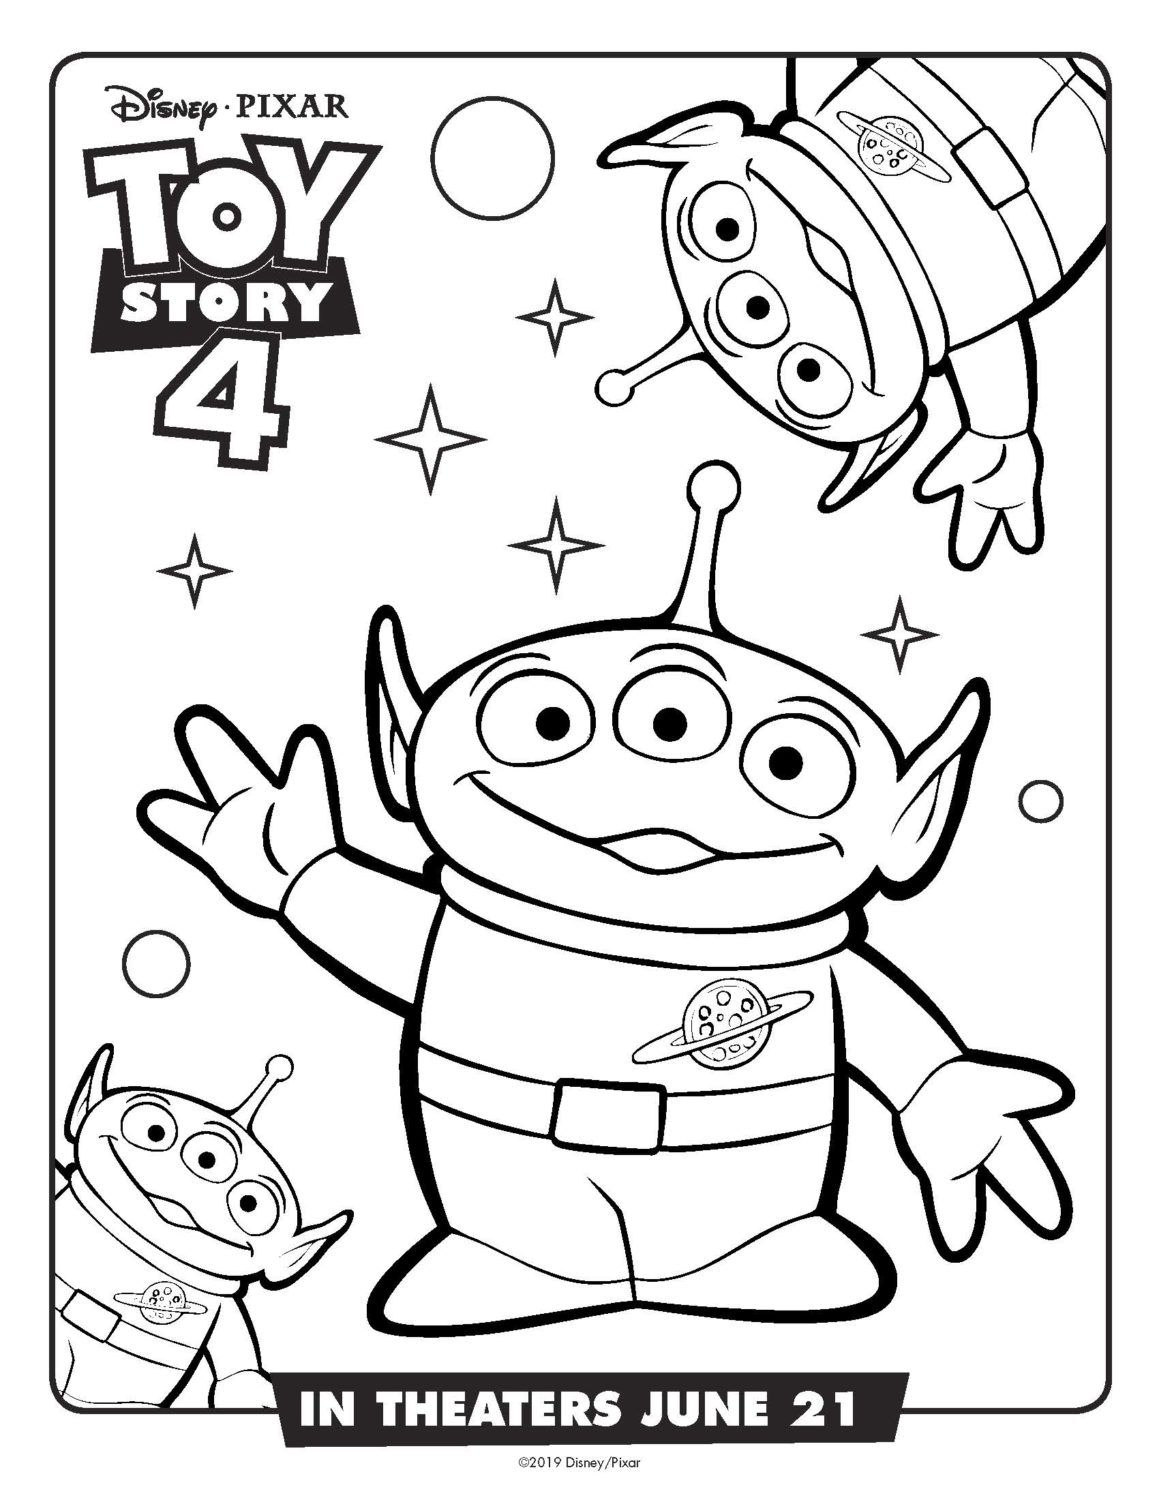 Toy Story 4 Aliens Coloring Page and Activity Sheet